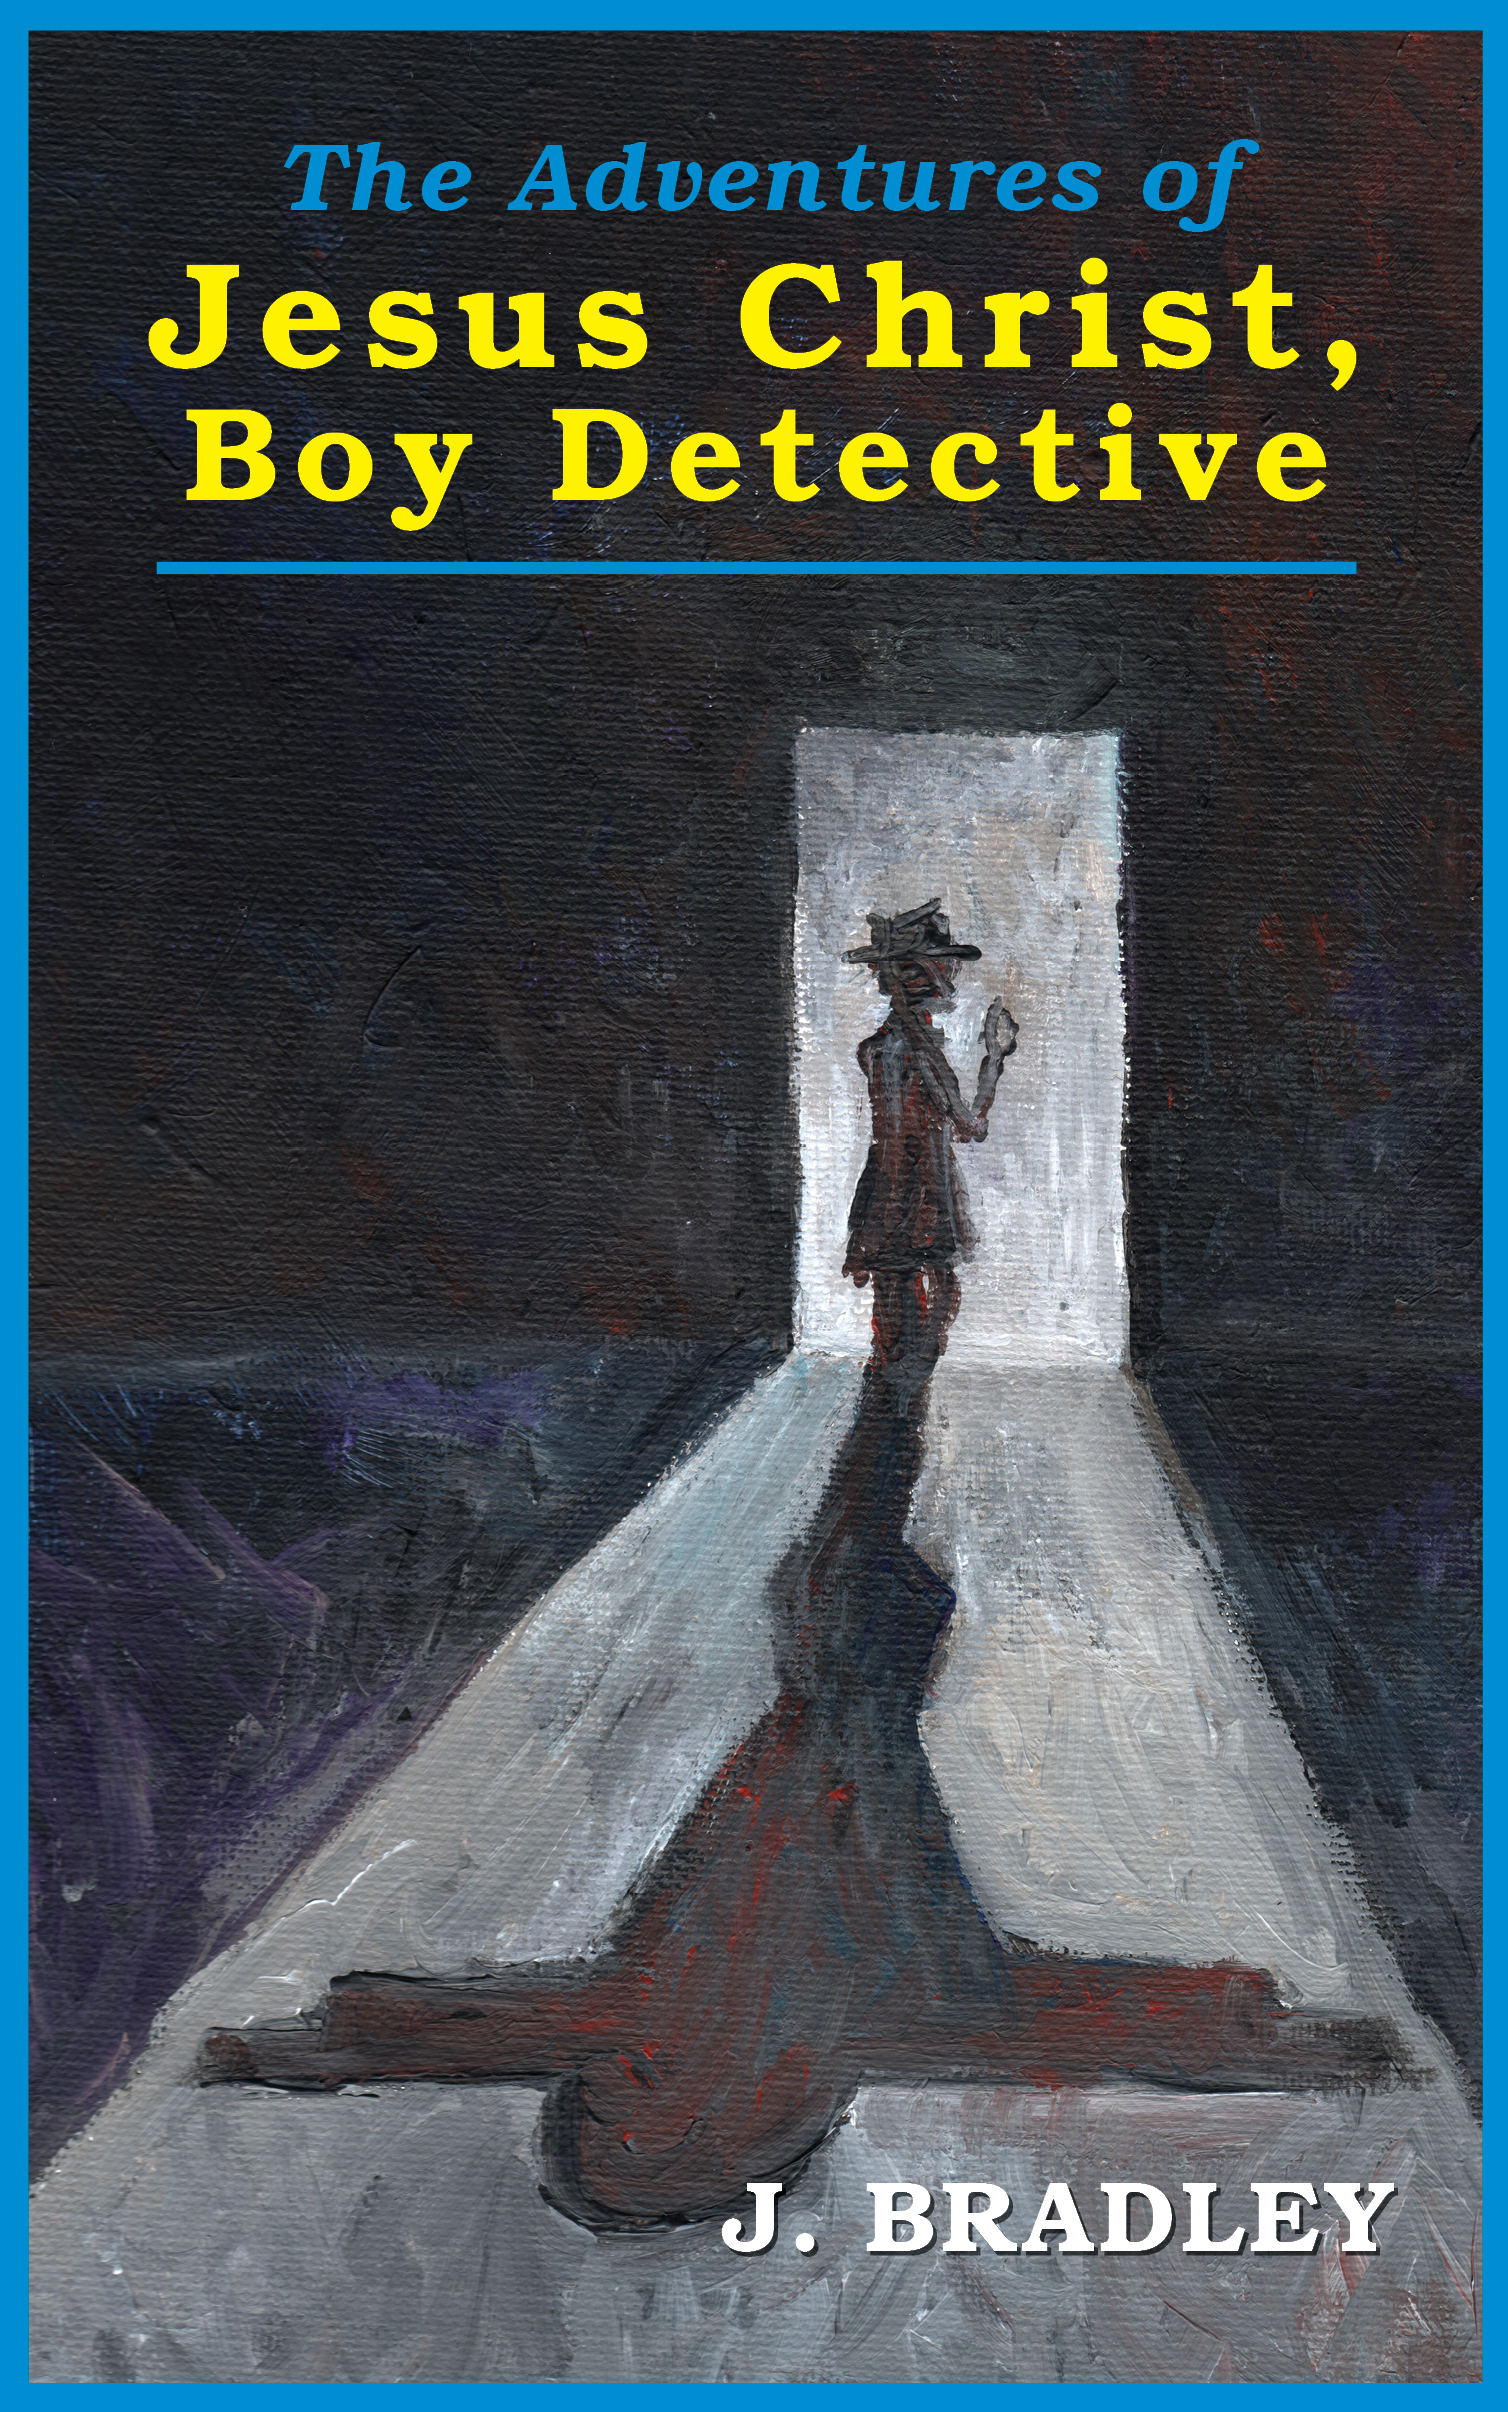 The Adventures of Jesus Christ, Boy Detective